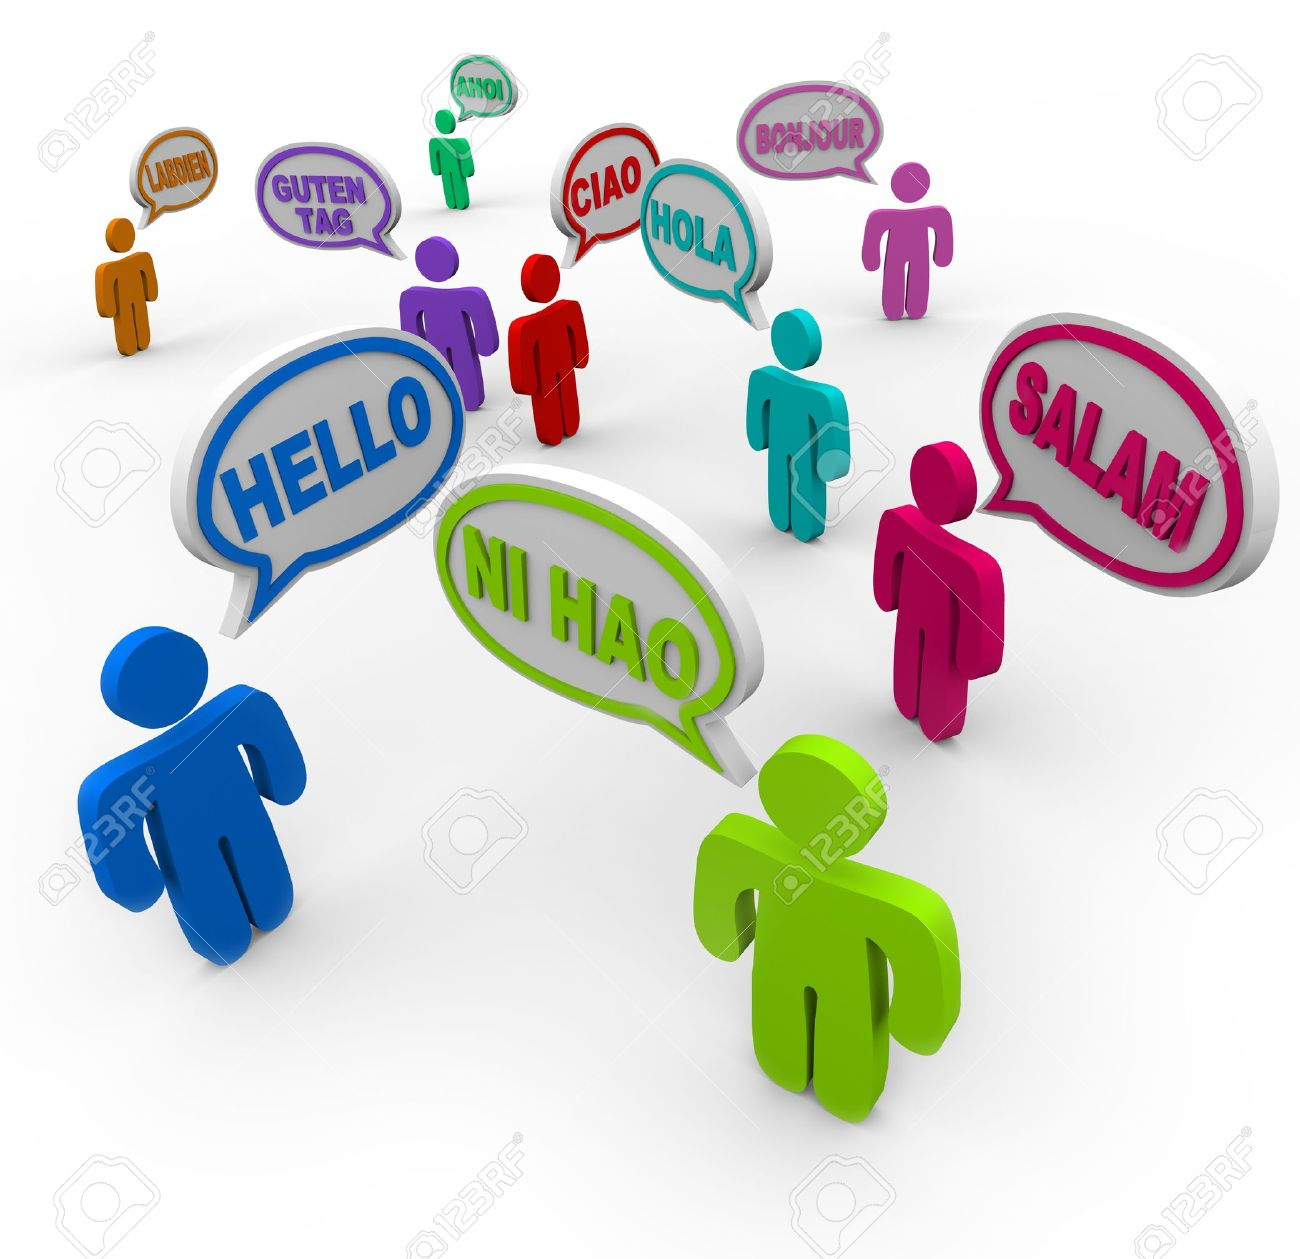 Many people speaking and greeting each other in different international languages saying hello in their native tongues Stock Photo - 10622593